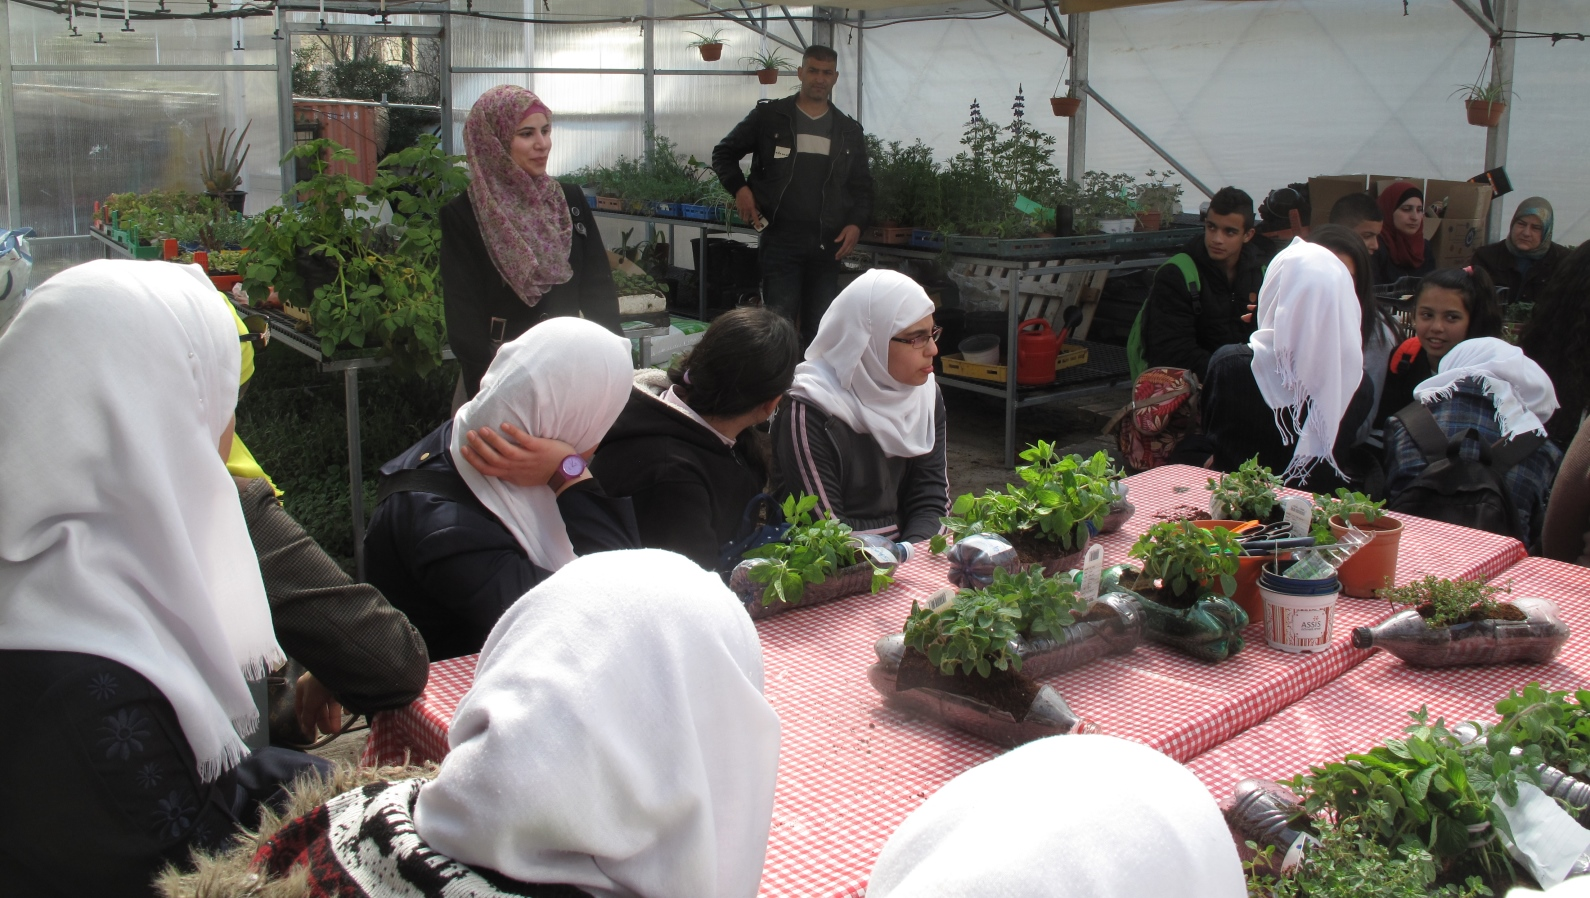 Arab Jerusalem teens learning about sustainable gardening at the Jerusalem Botanical Gardens. Photo: courtesy